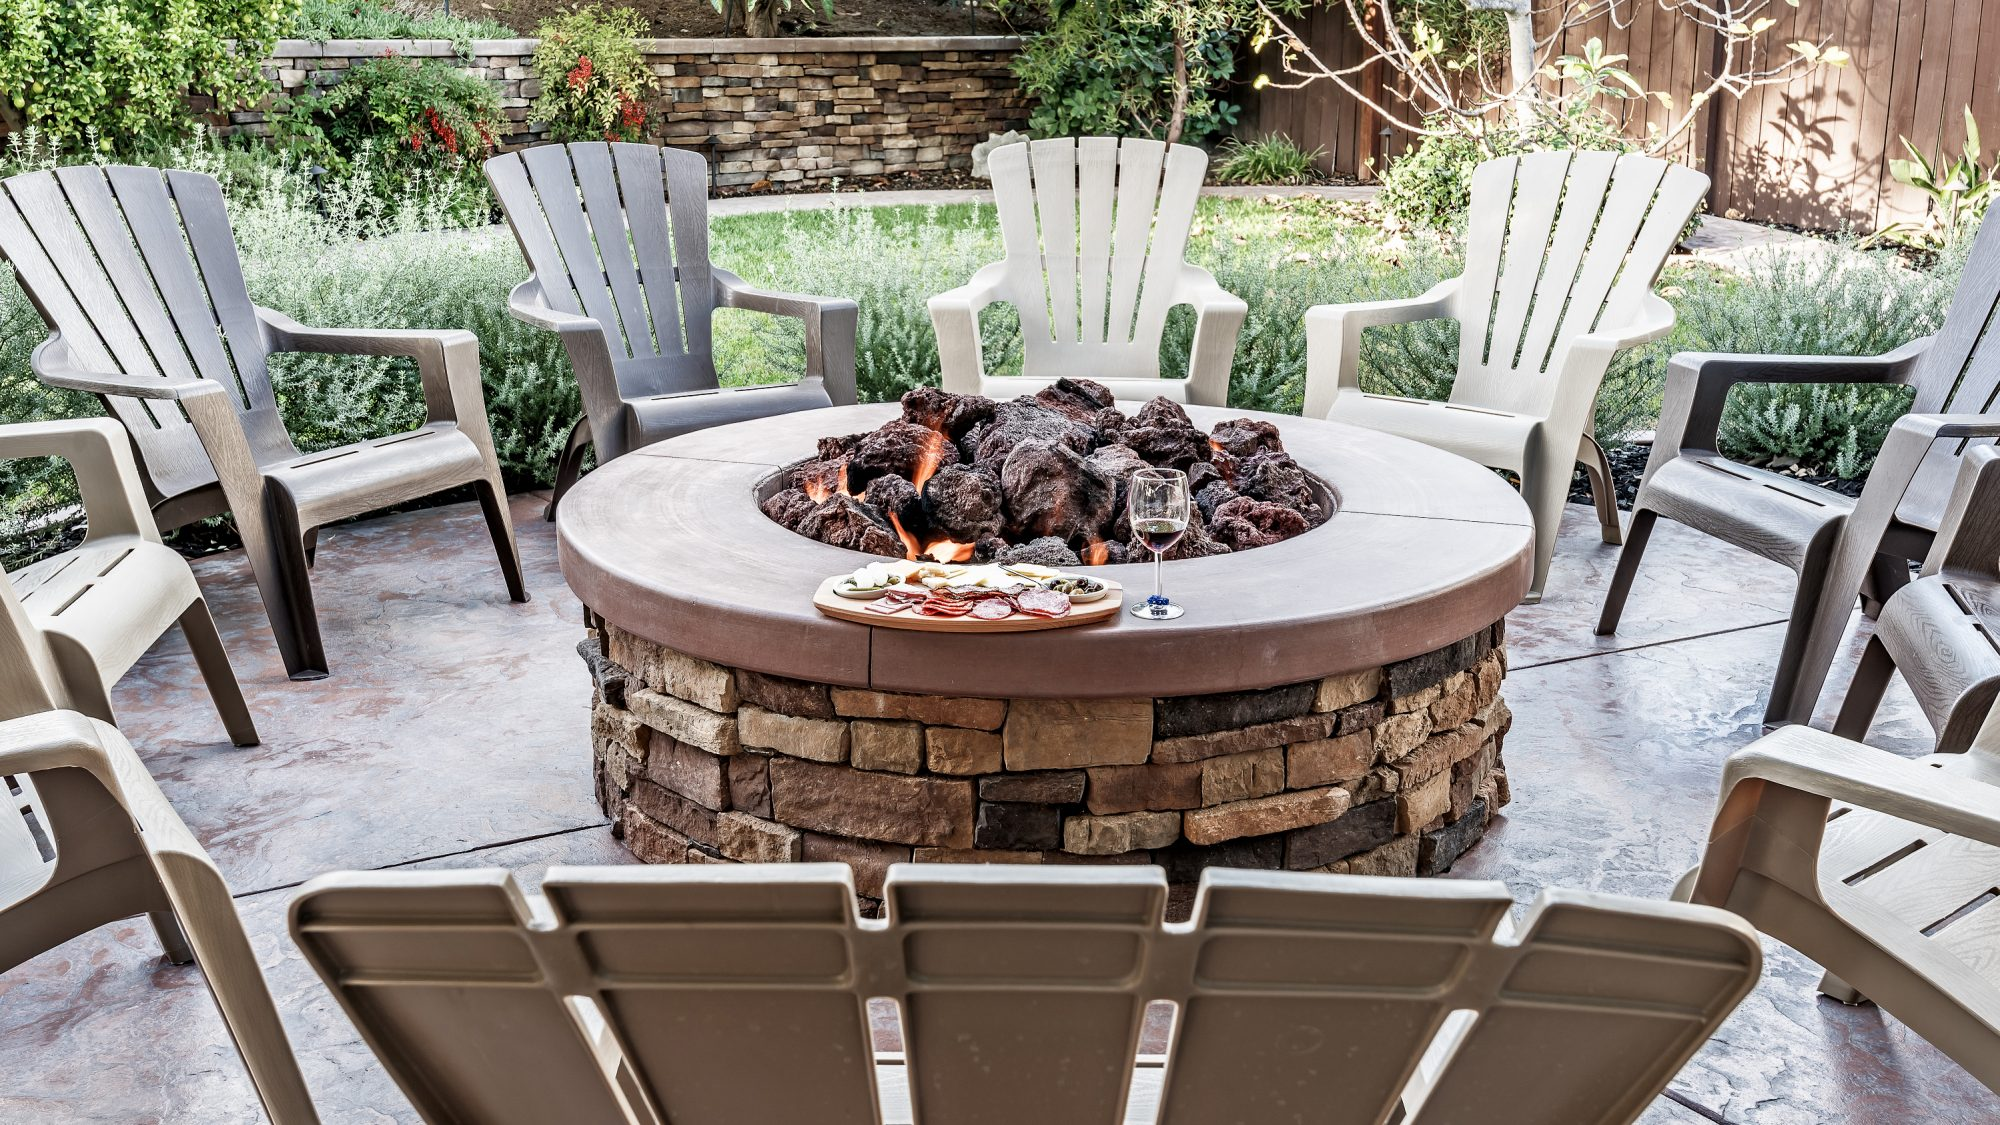 New Year's Eve during coronavirus ideas - editor suggestions (fire pit)